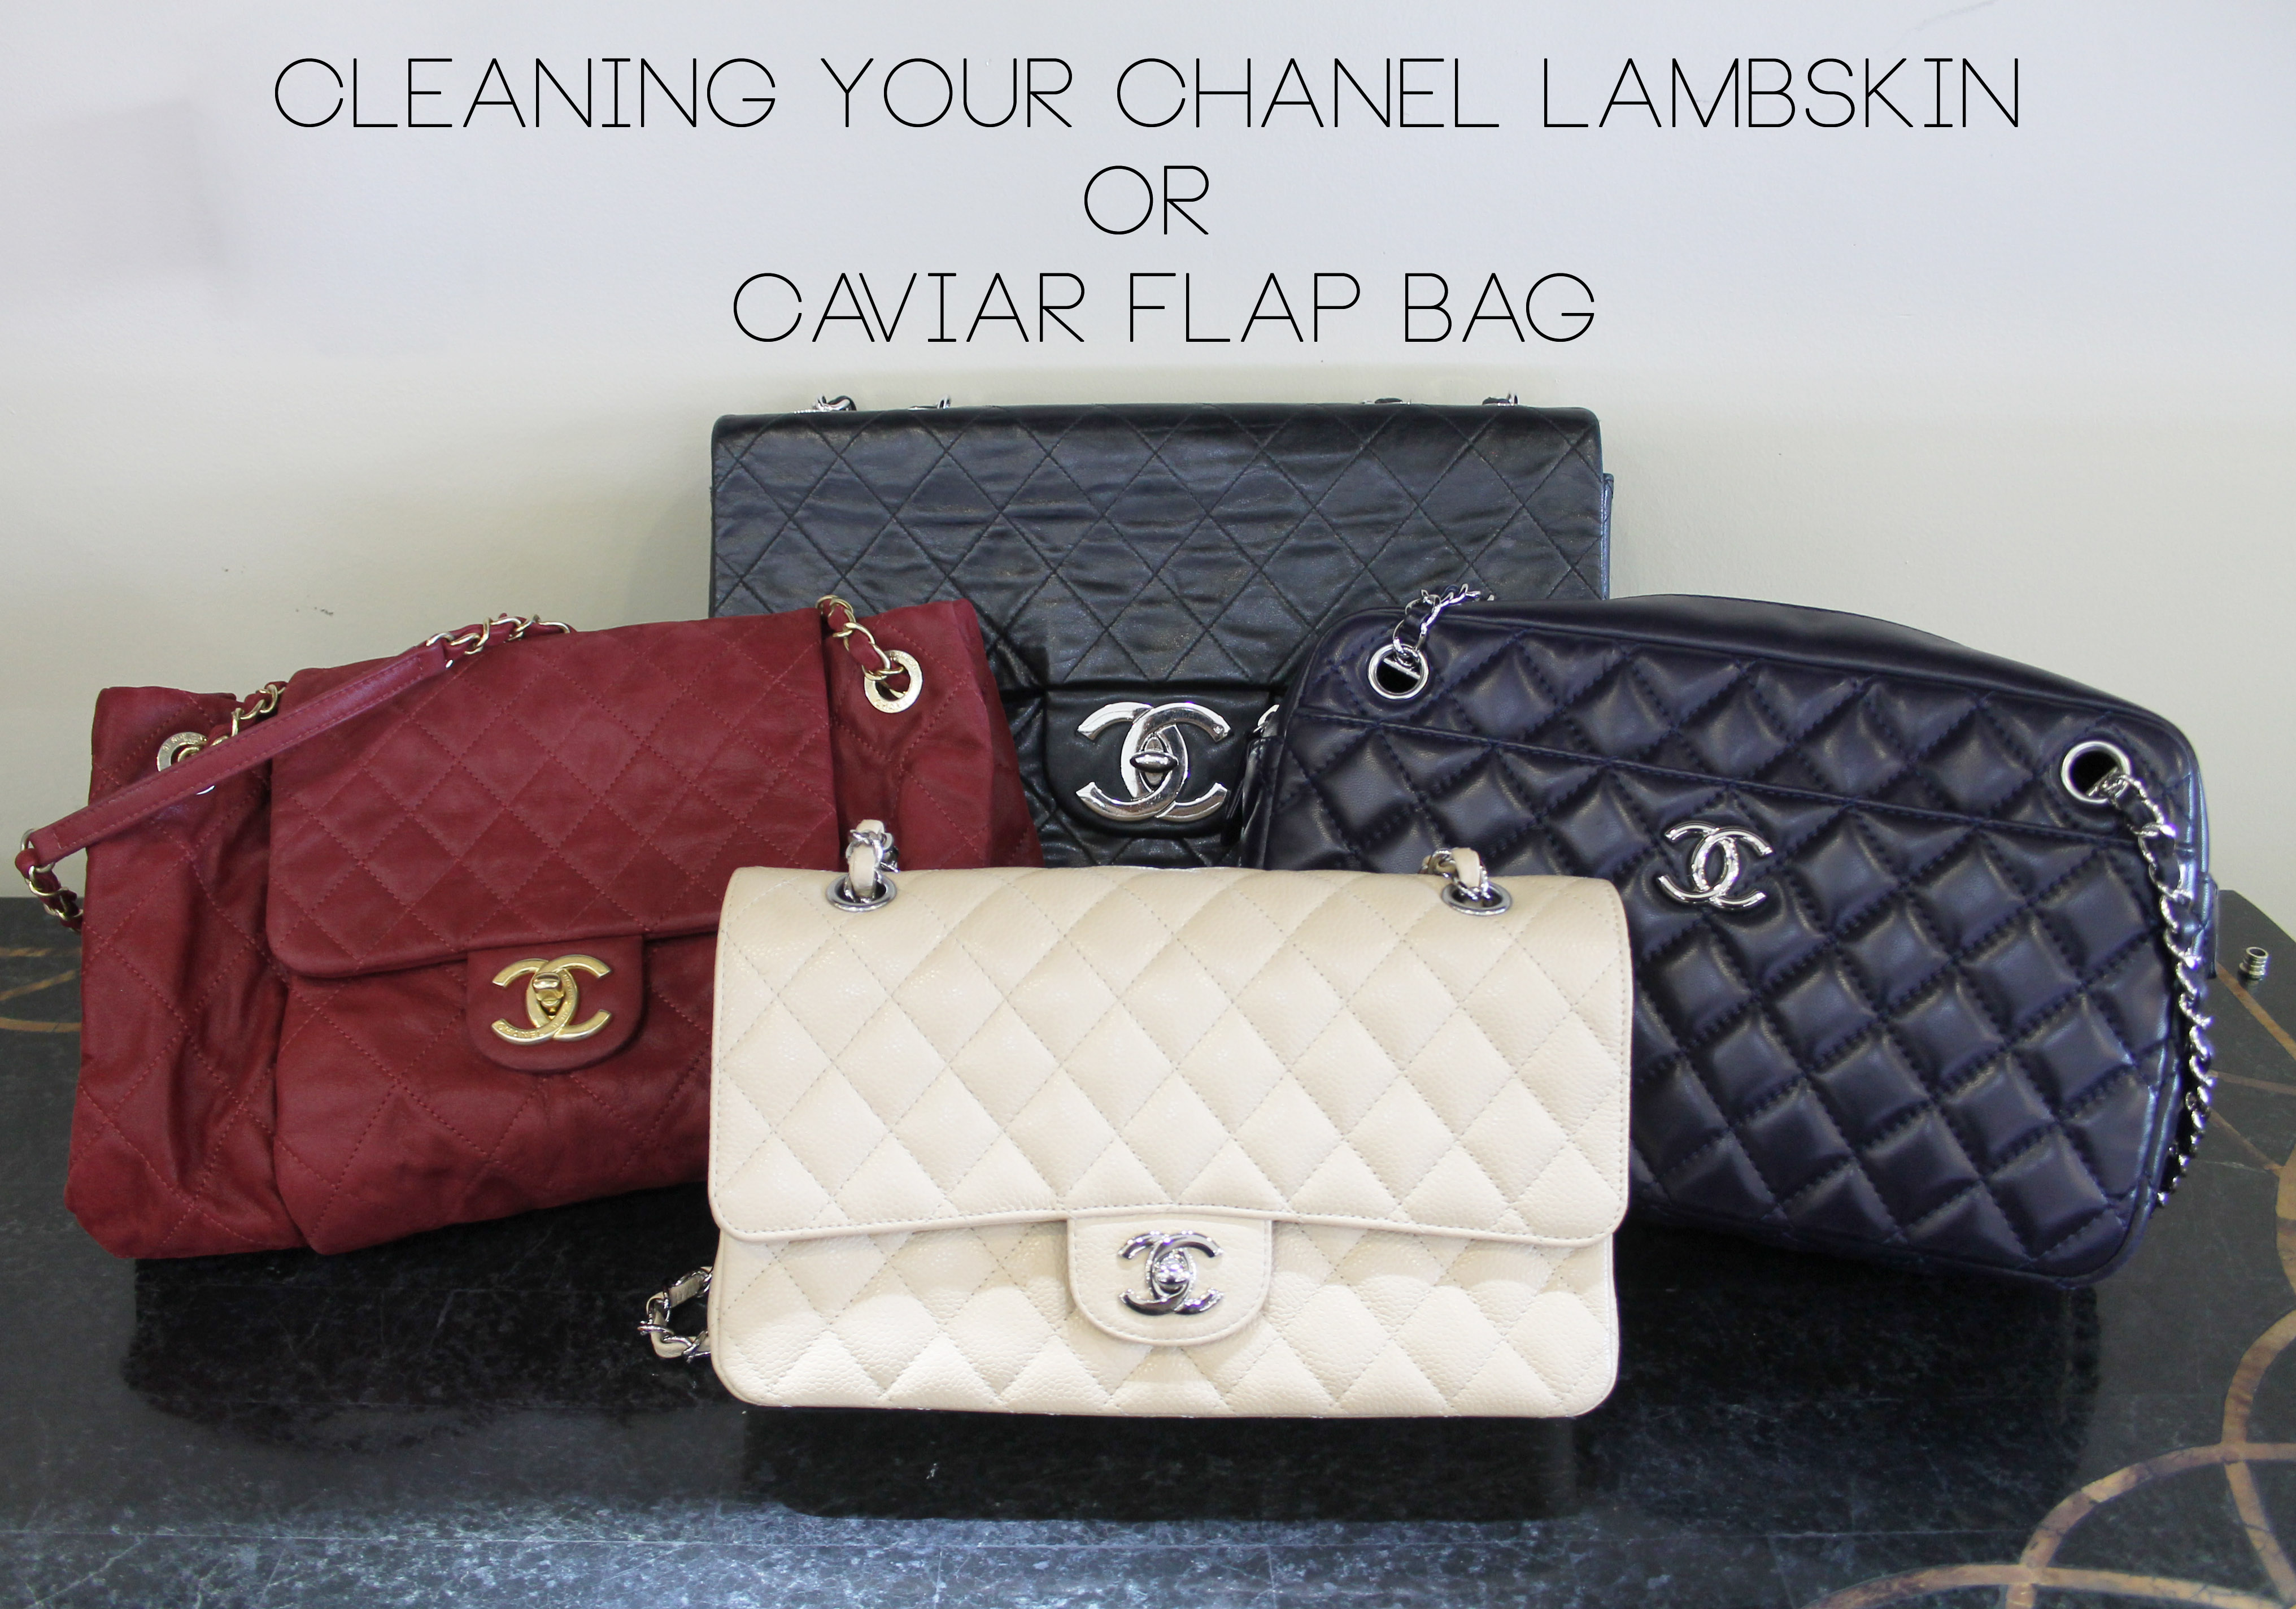 Your What favorite chanel bag? rare photo